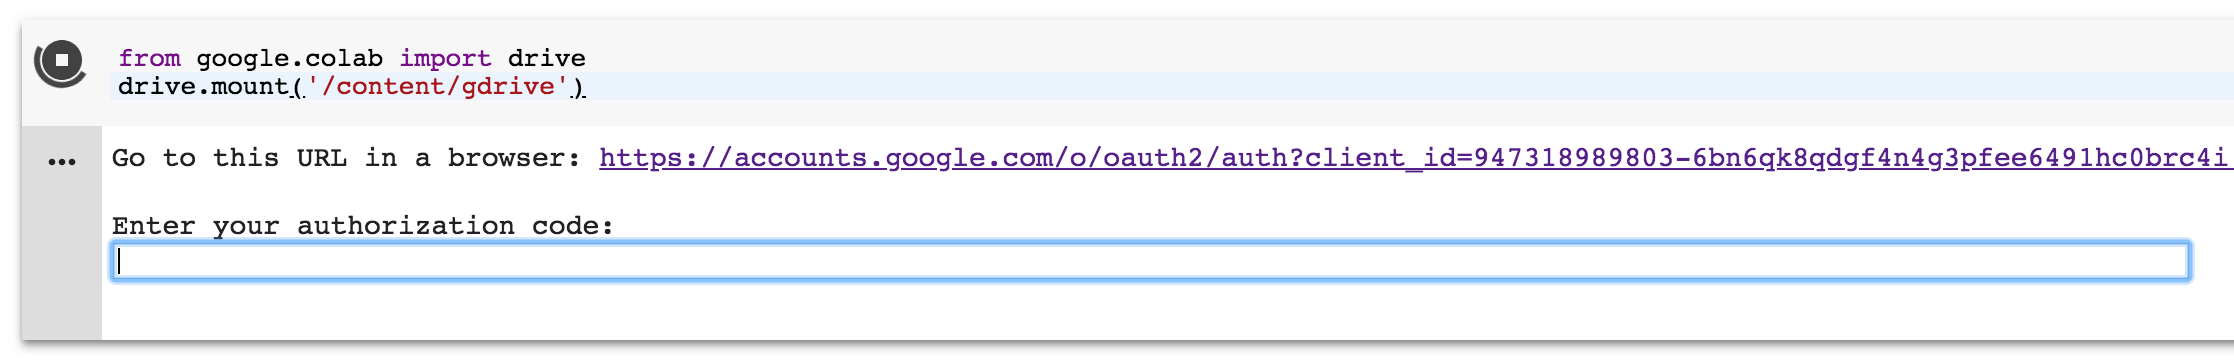 How to save our model to Google Drive and reuse it - Avinash